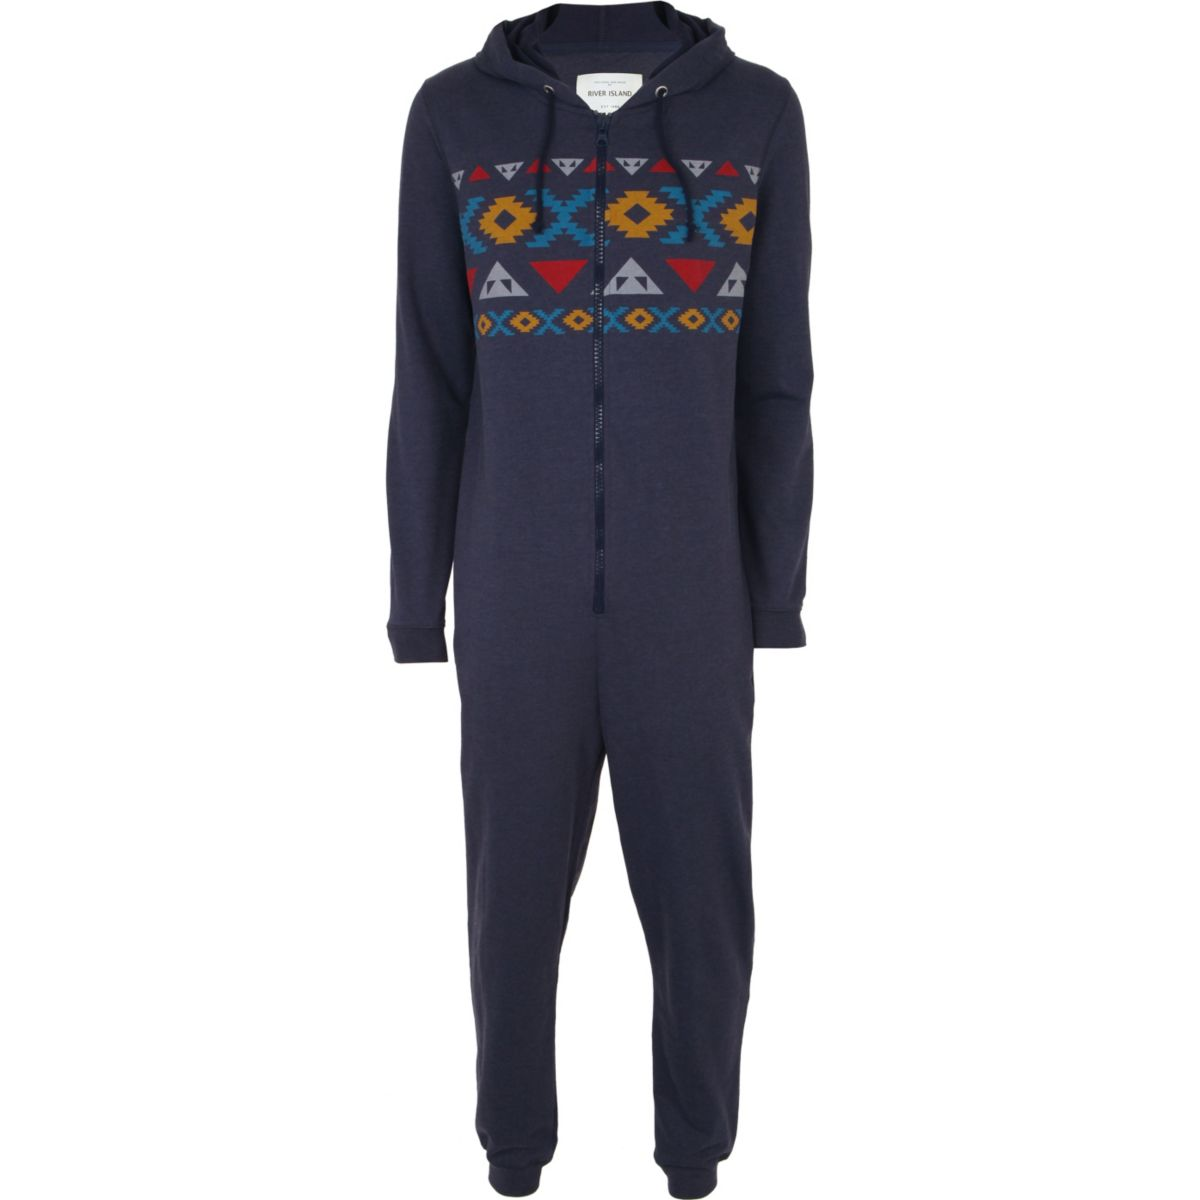 About Men's Onesie From Saturday morning cartoons to summer vacations, face it: kids get to have all the fun. If you are still a kid at heart and want to recapture some of your childhood memories, a men's onesie is a warm, comfortable, and fun solution to the age-old problem of growing up.